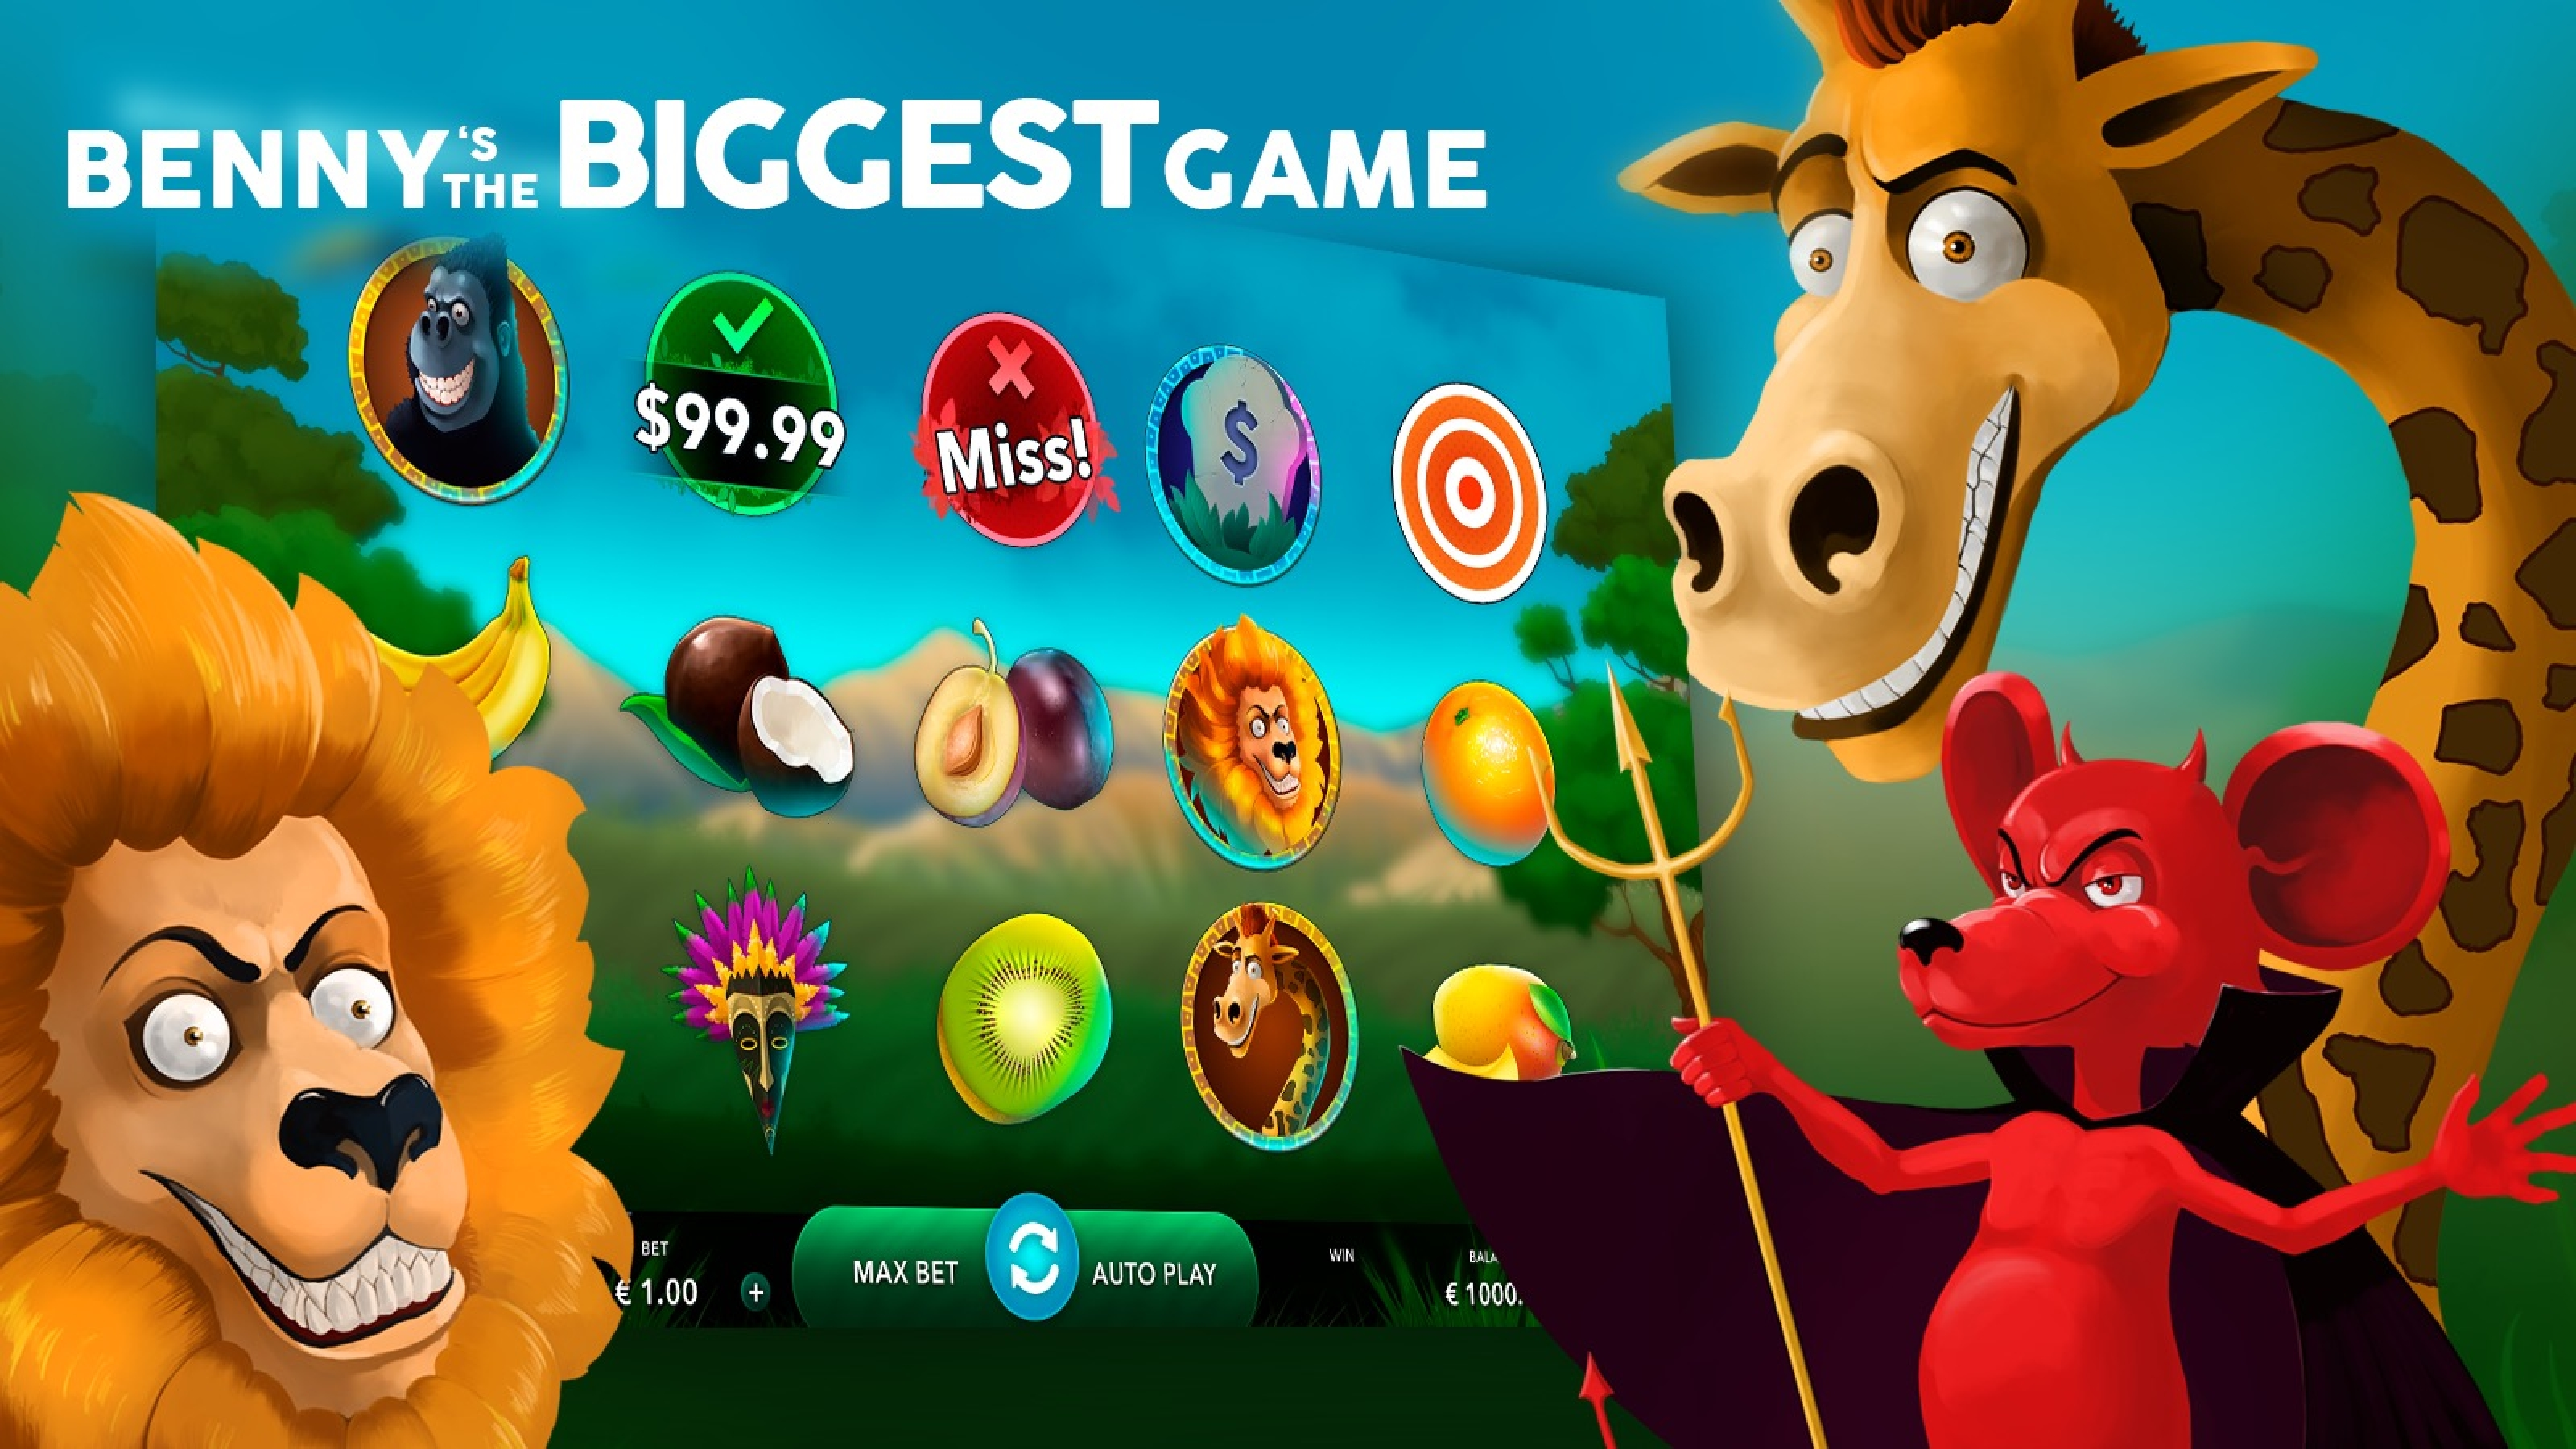 The Benny's the Biggest Game Online Slot Demo Game by Mascot Gaming